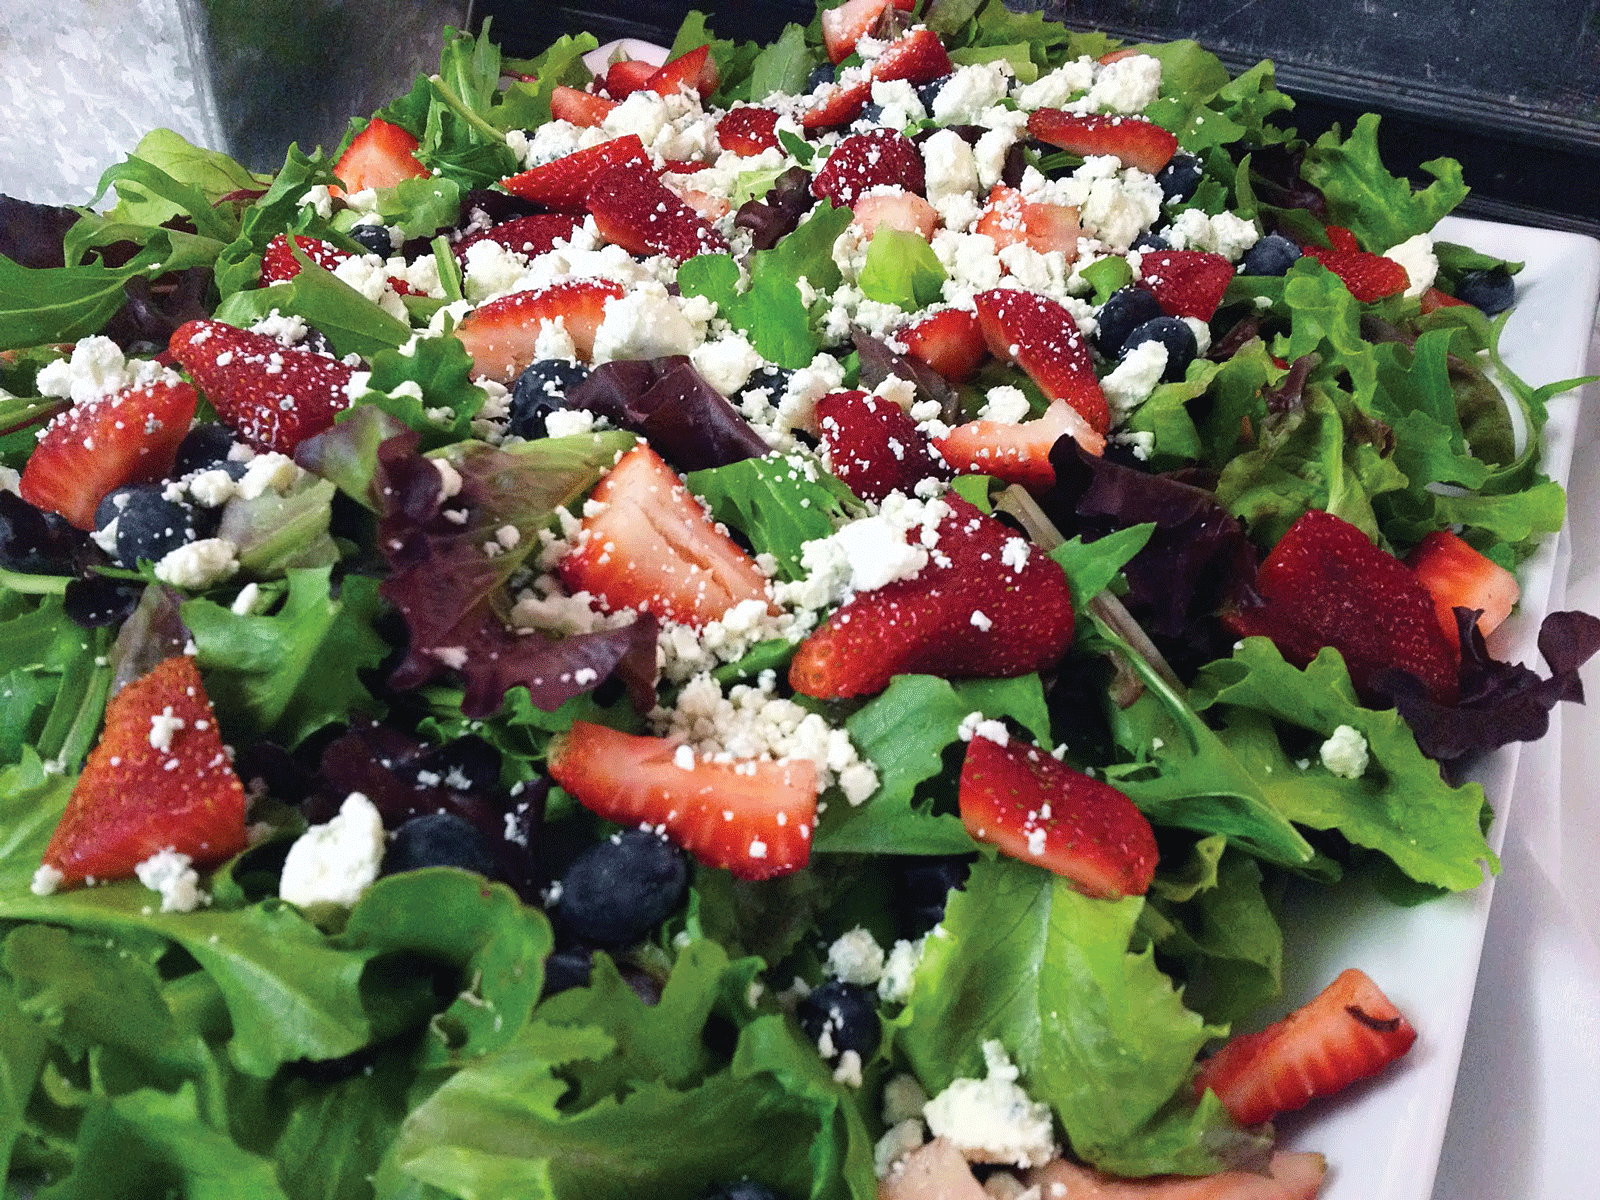 Strawberry & goatcheese salad